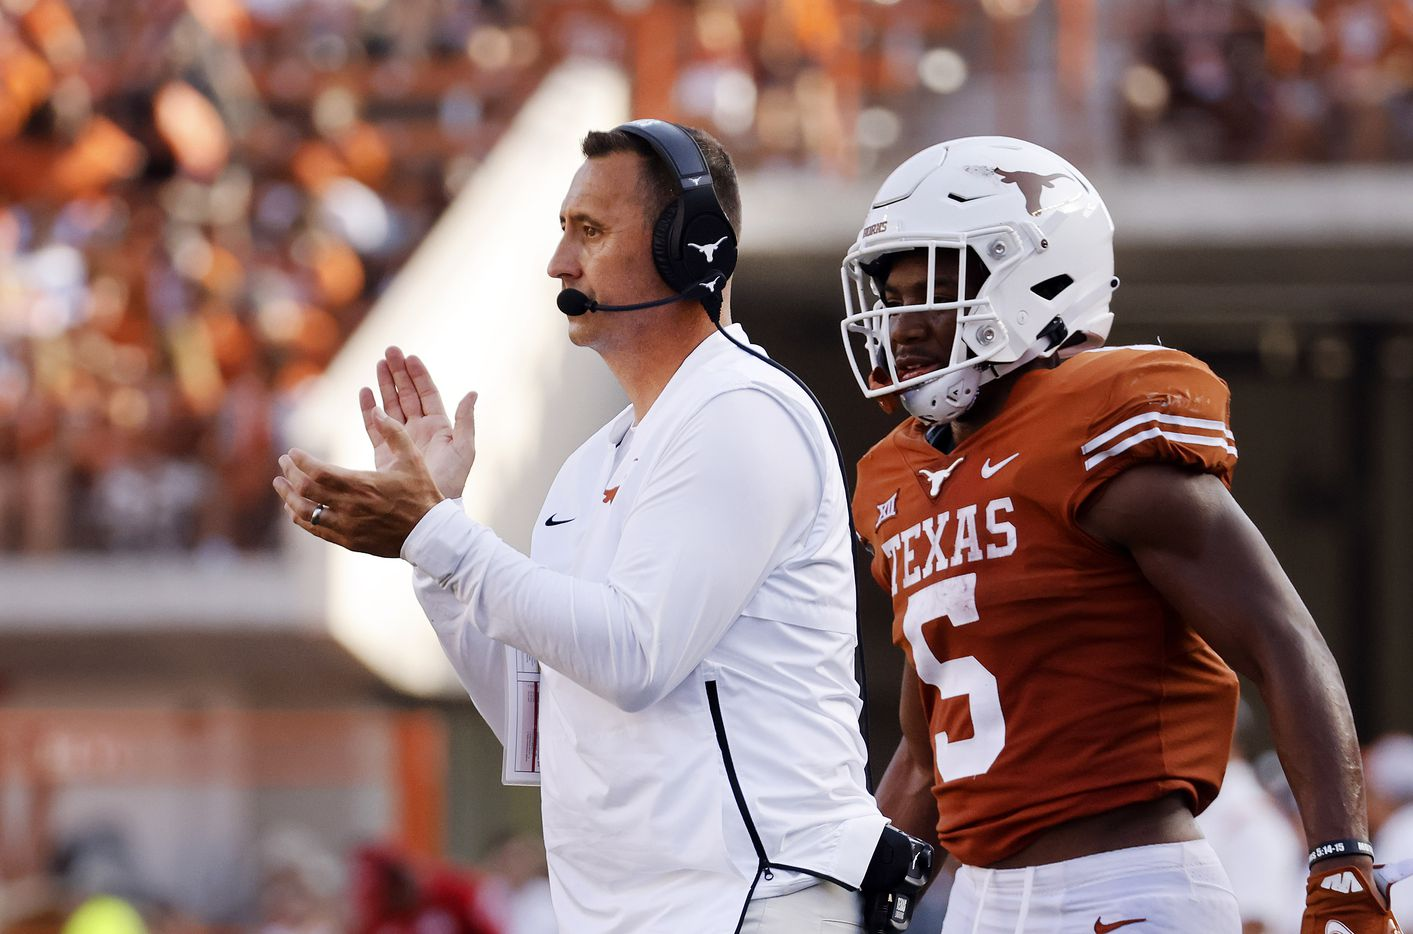 Texas Longhorns head coach Steve Sarkisian applauds his players as they faced the Louisiana-Lafayette Ragin Cajuns during the second half at DKR-Texas Memorial Stadium in Austin, Saturday, September 4, 2021. (Tom Fox/The Dallas Morning News)